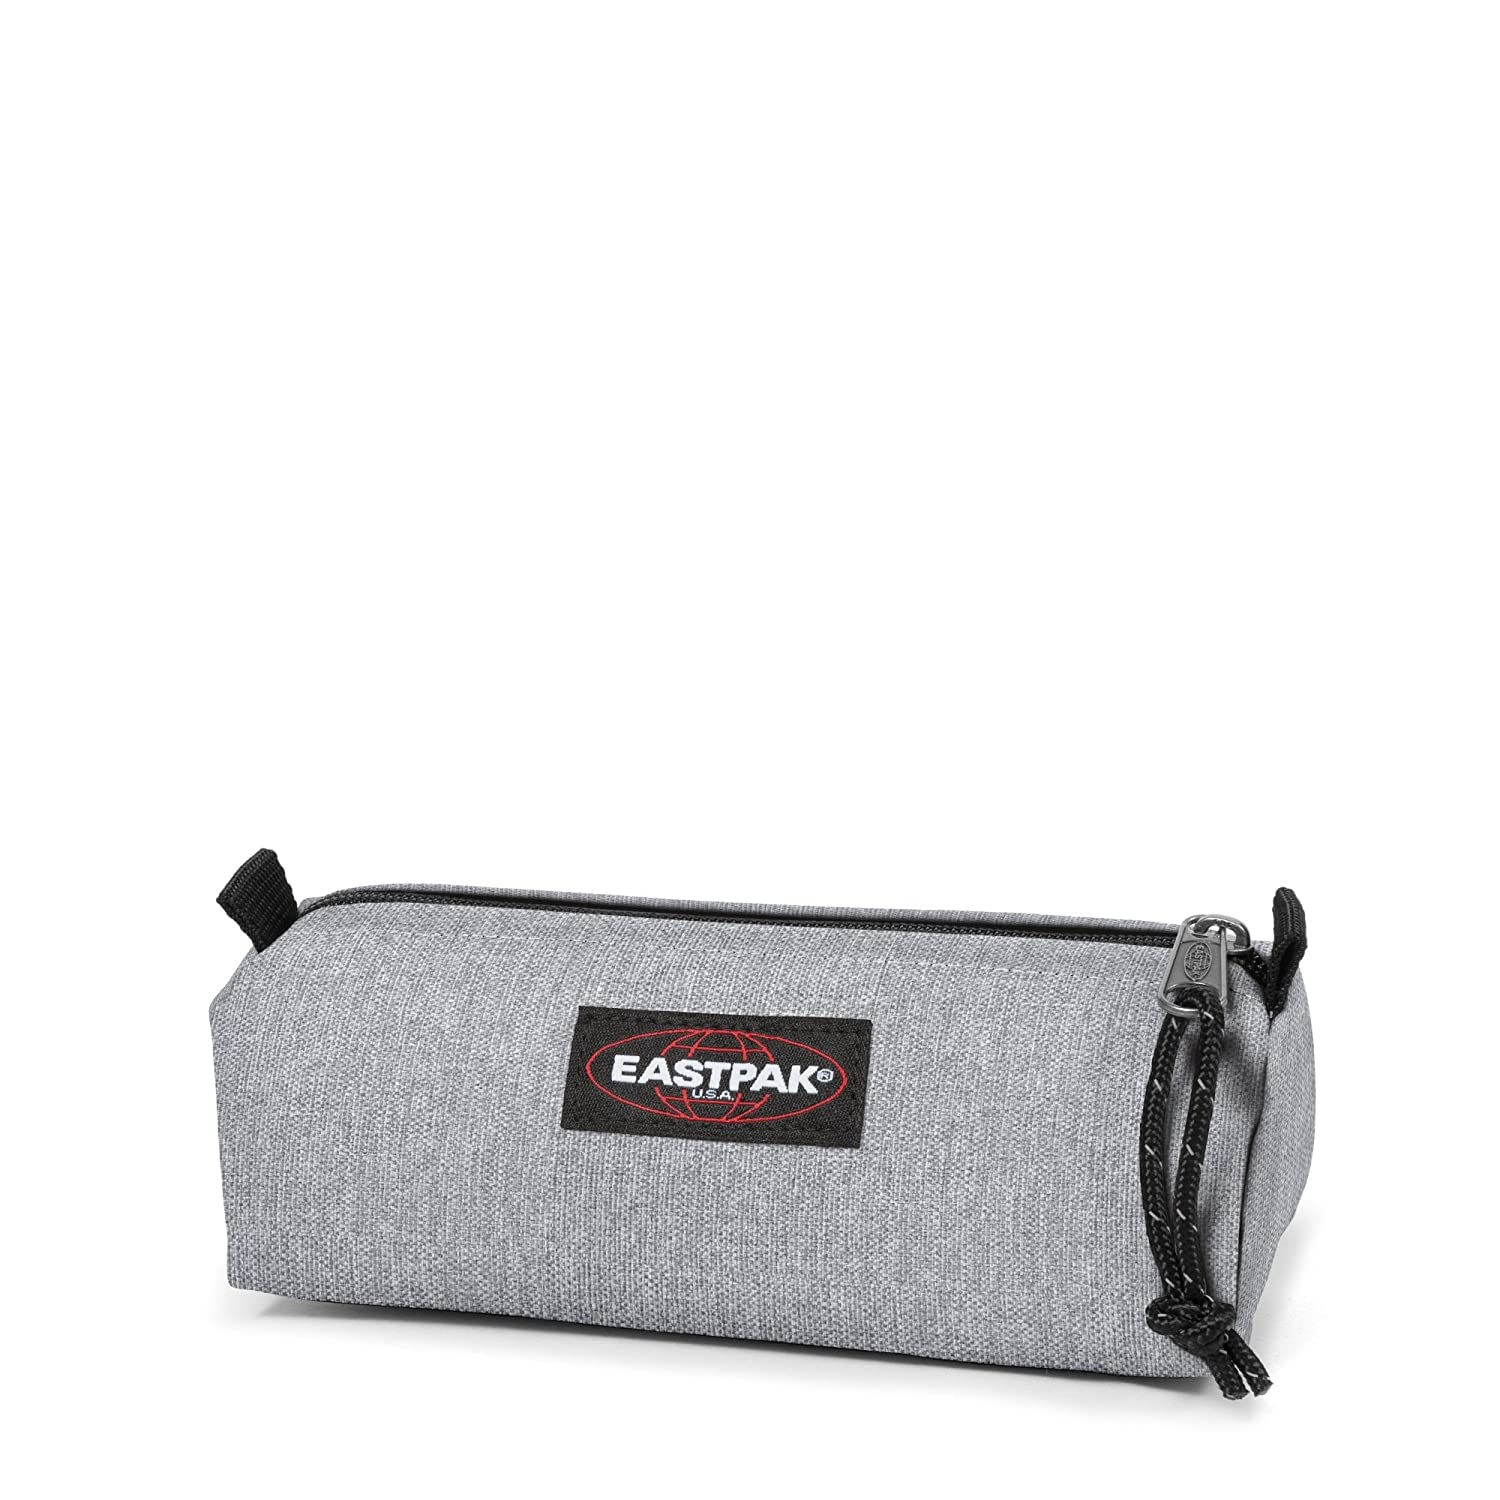 Eastpak Benchmark Single Pencil Case, 21 cm, Grey (Sunday Grey)